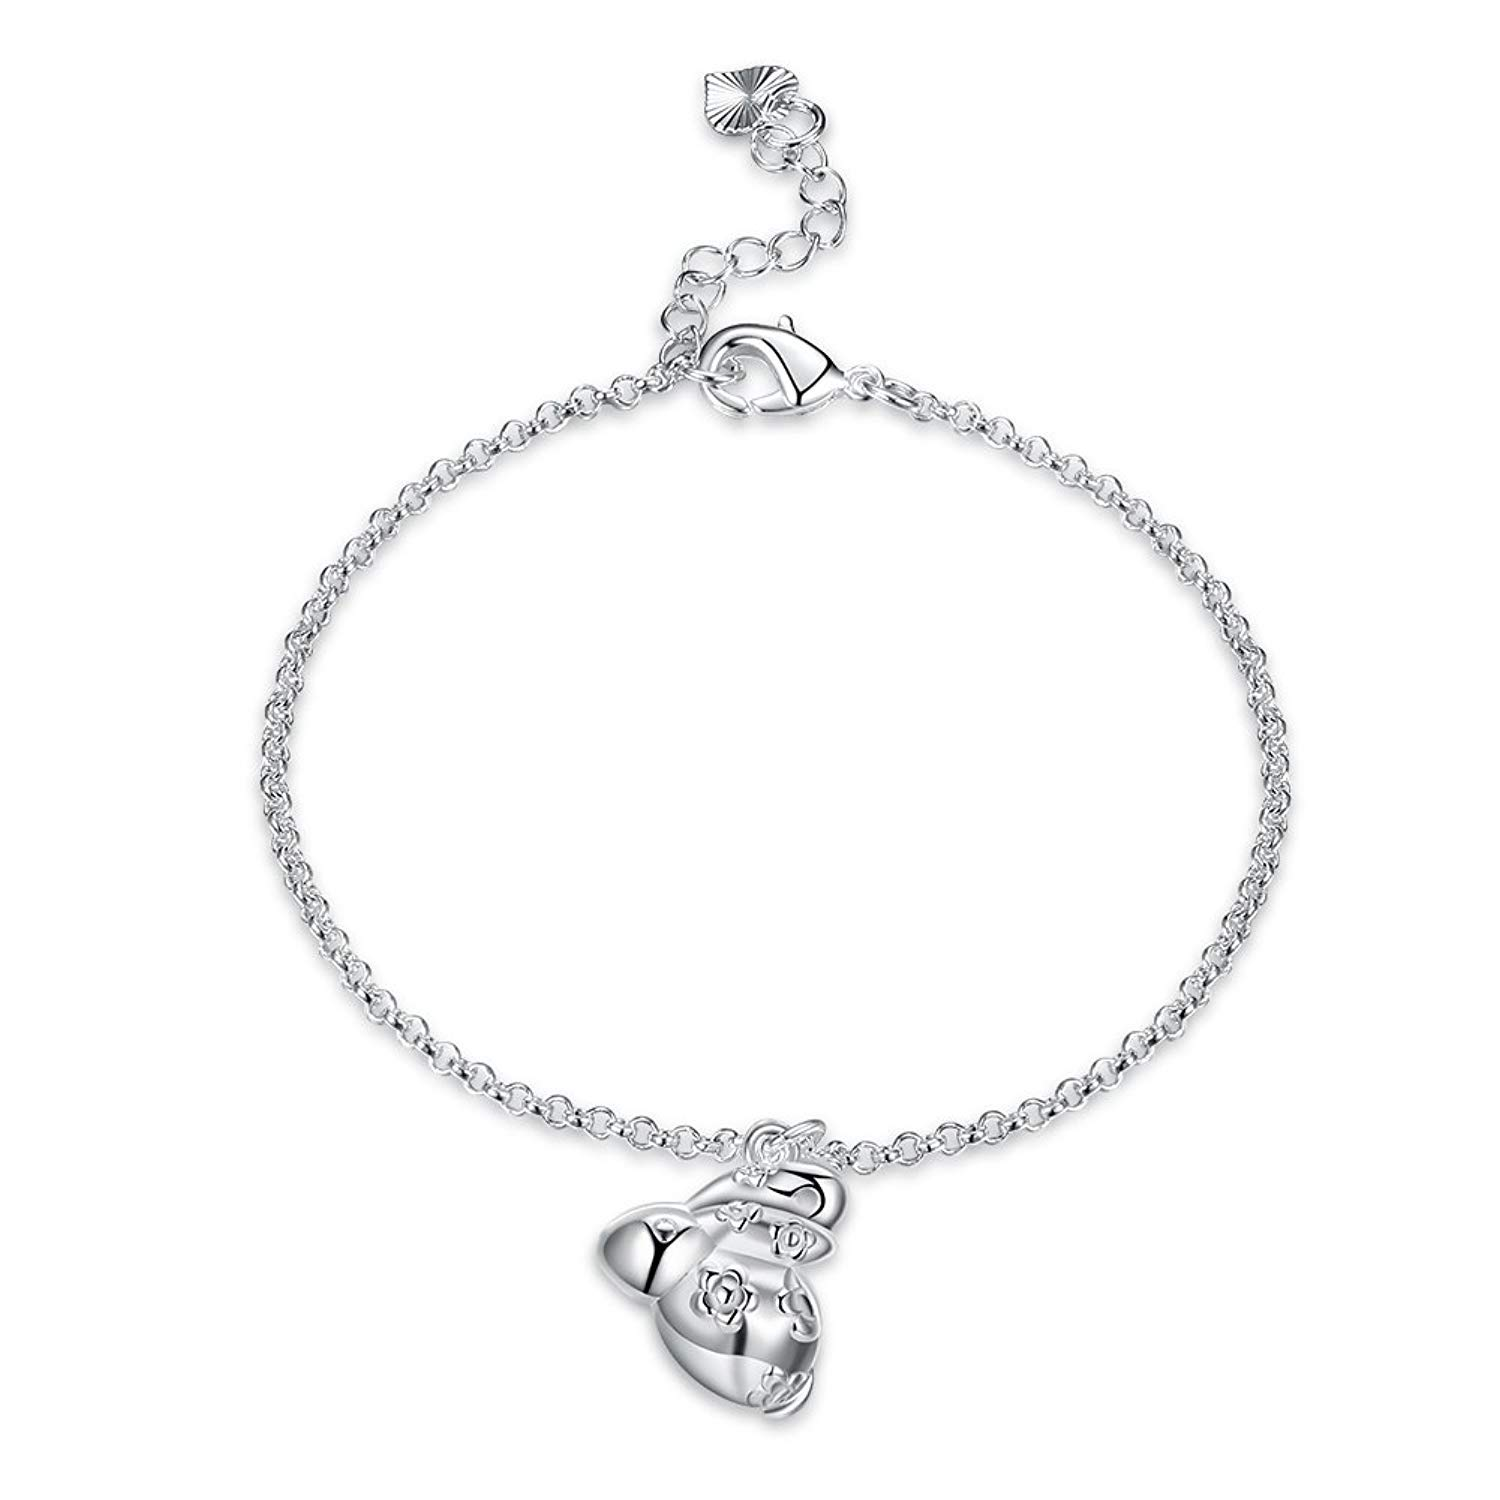 DVANIS Exquisite Zodiac Bracelet Rabbit Shape Pendant Silver Plated Women Girls Birthday Gift